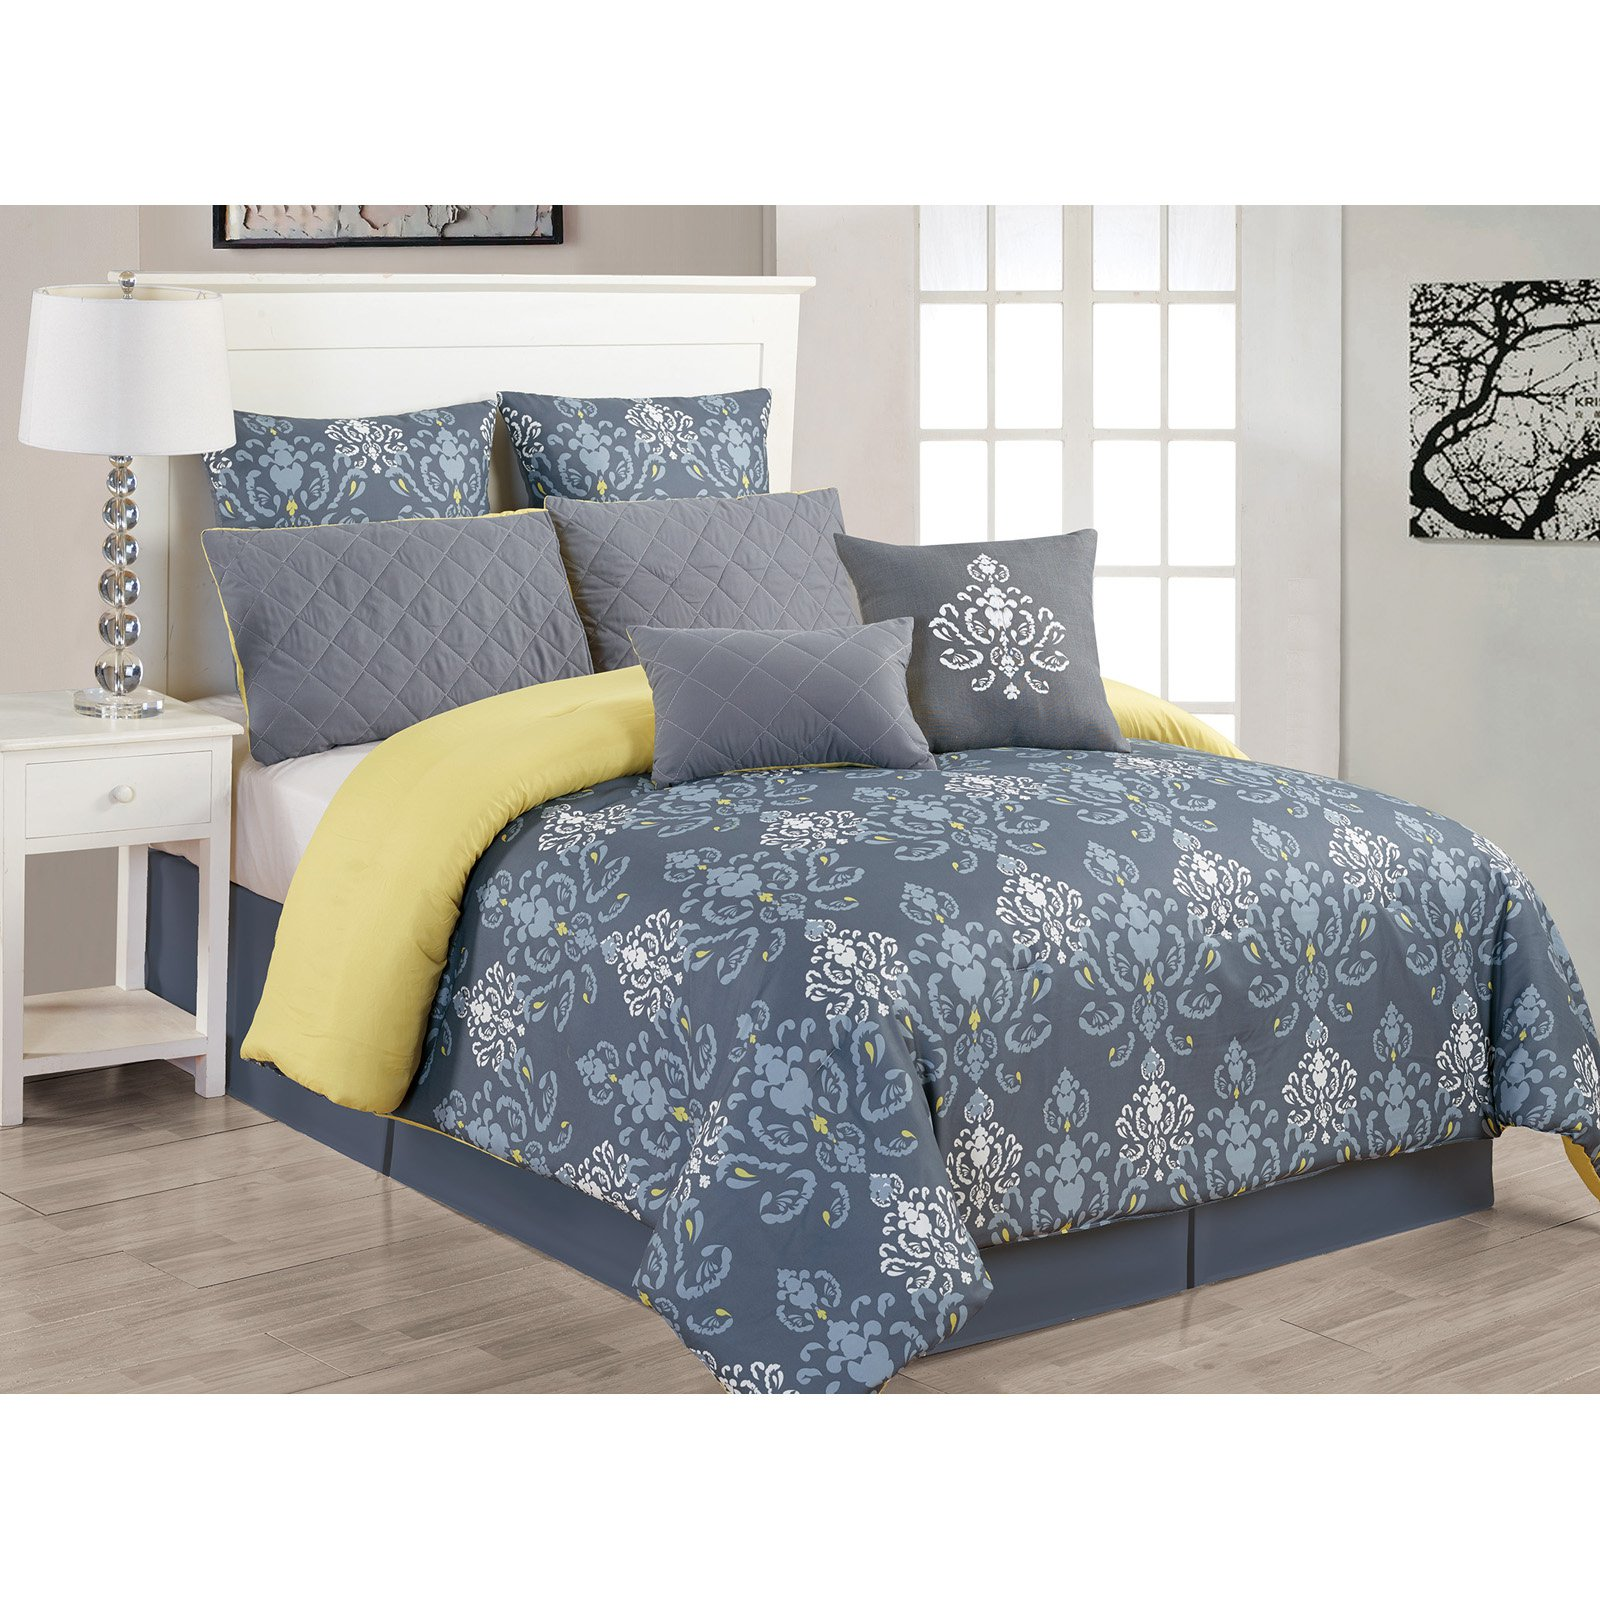 Lucienda Queen 3 Piece Duvet Set in Grey-Green